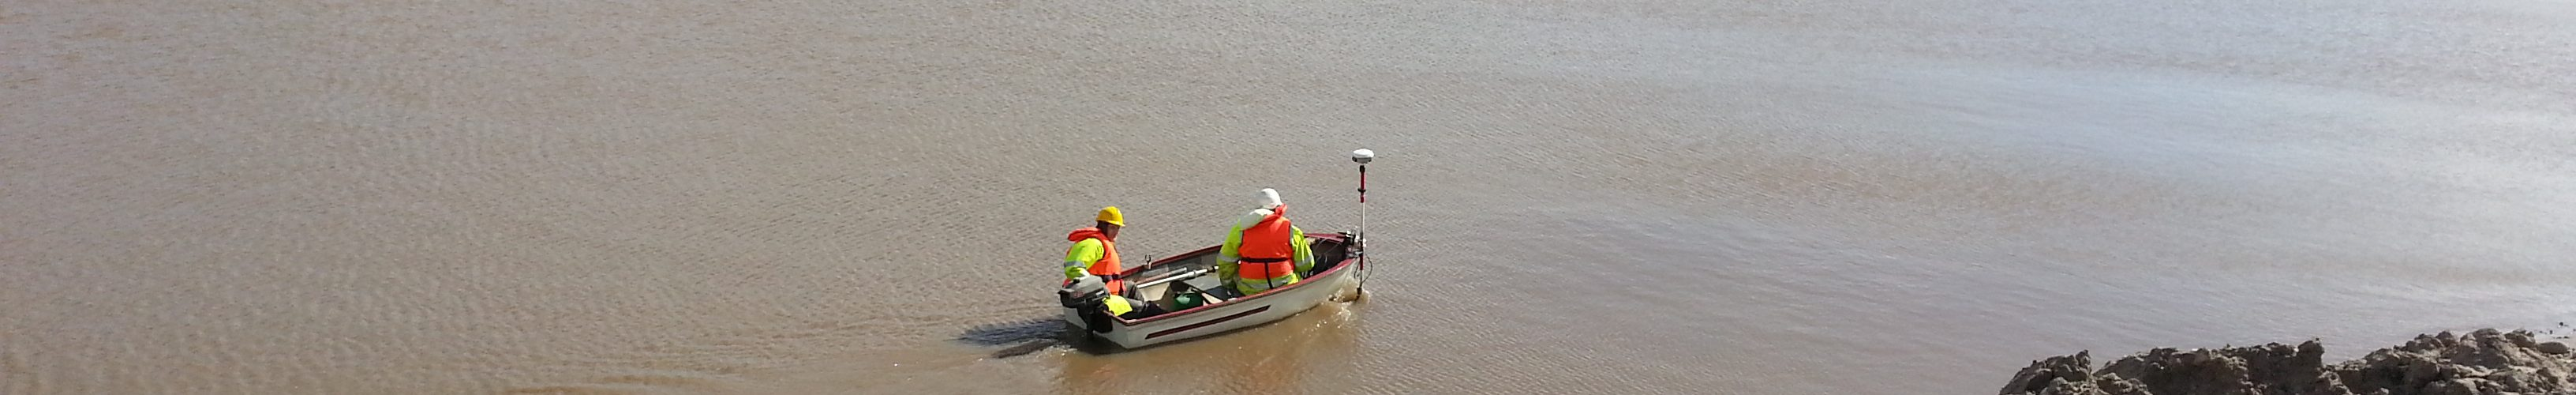 Sonar and GPS in use on a boat in a quarry